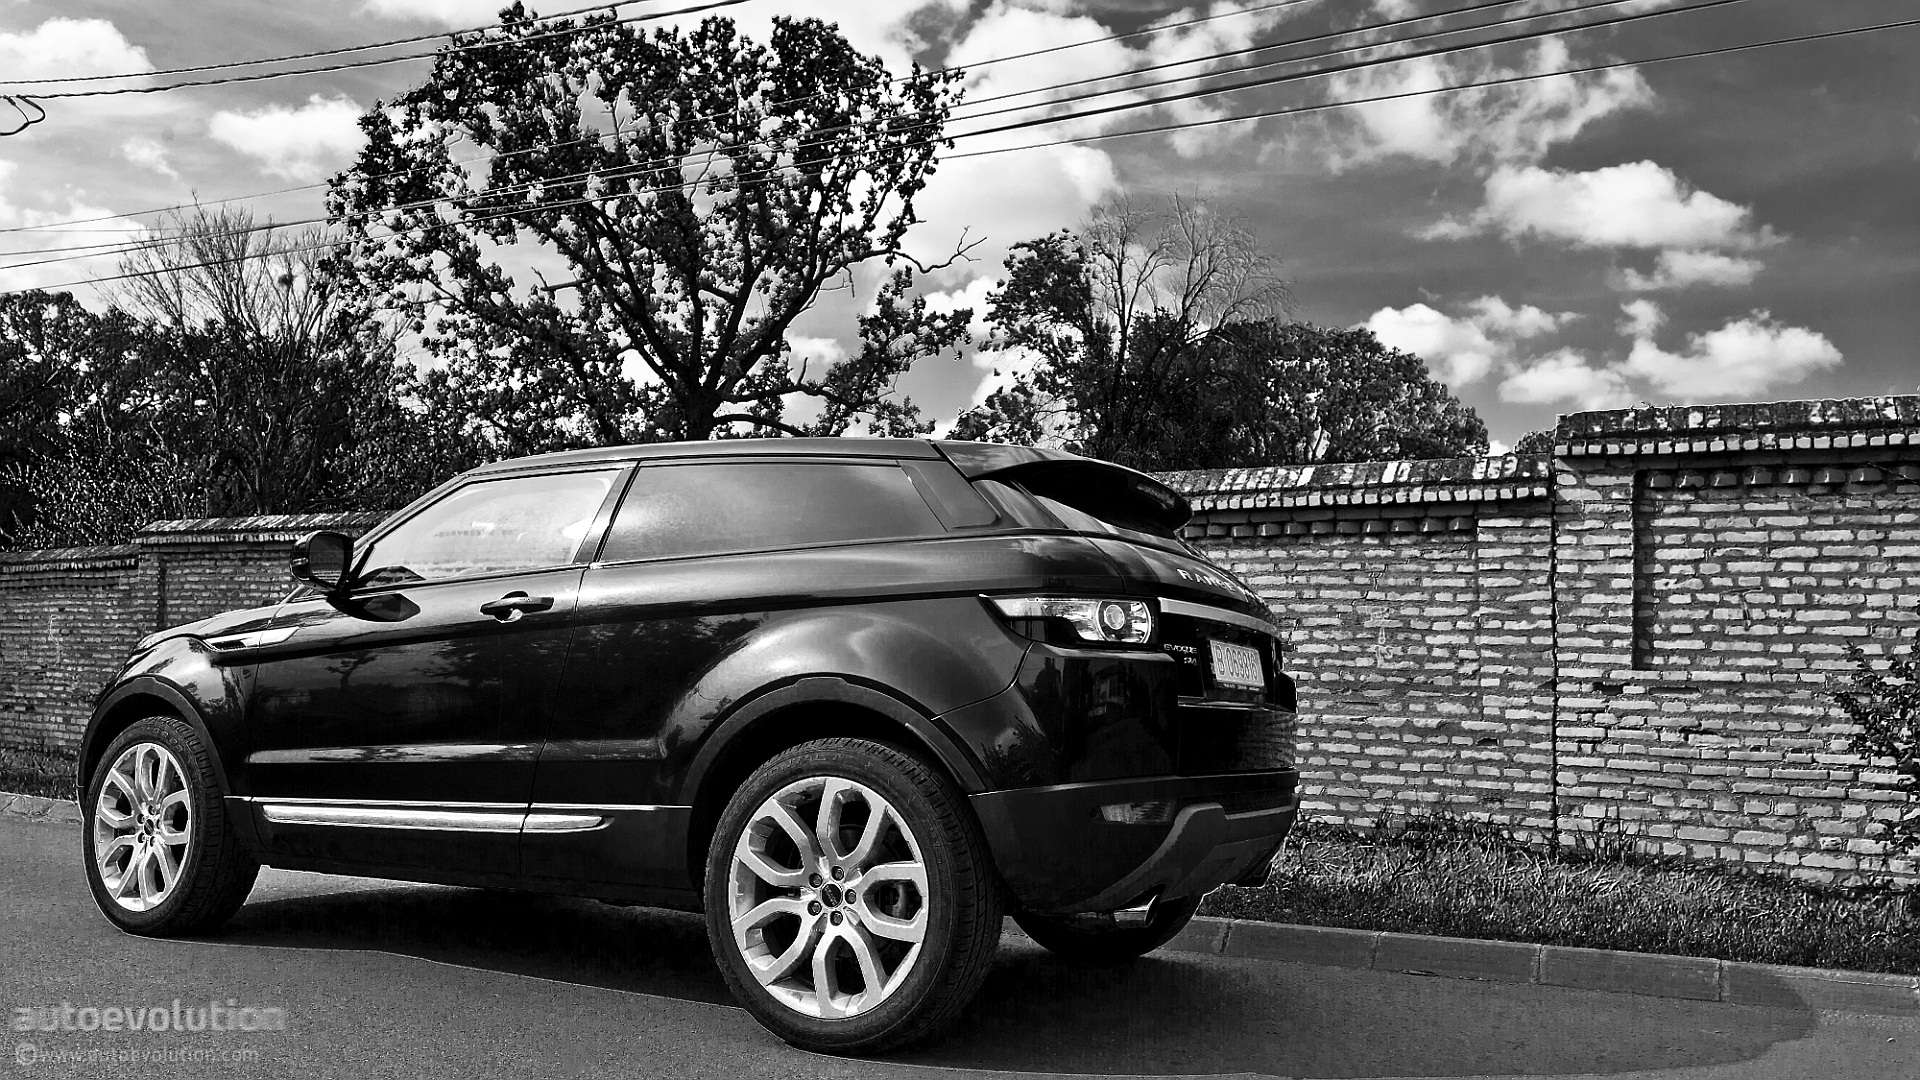 range rover evoque coupe review page 2 autoevolution. Black Bedroom Furniture Sets. Home Design Ideas